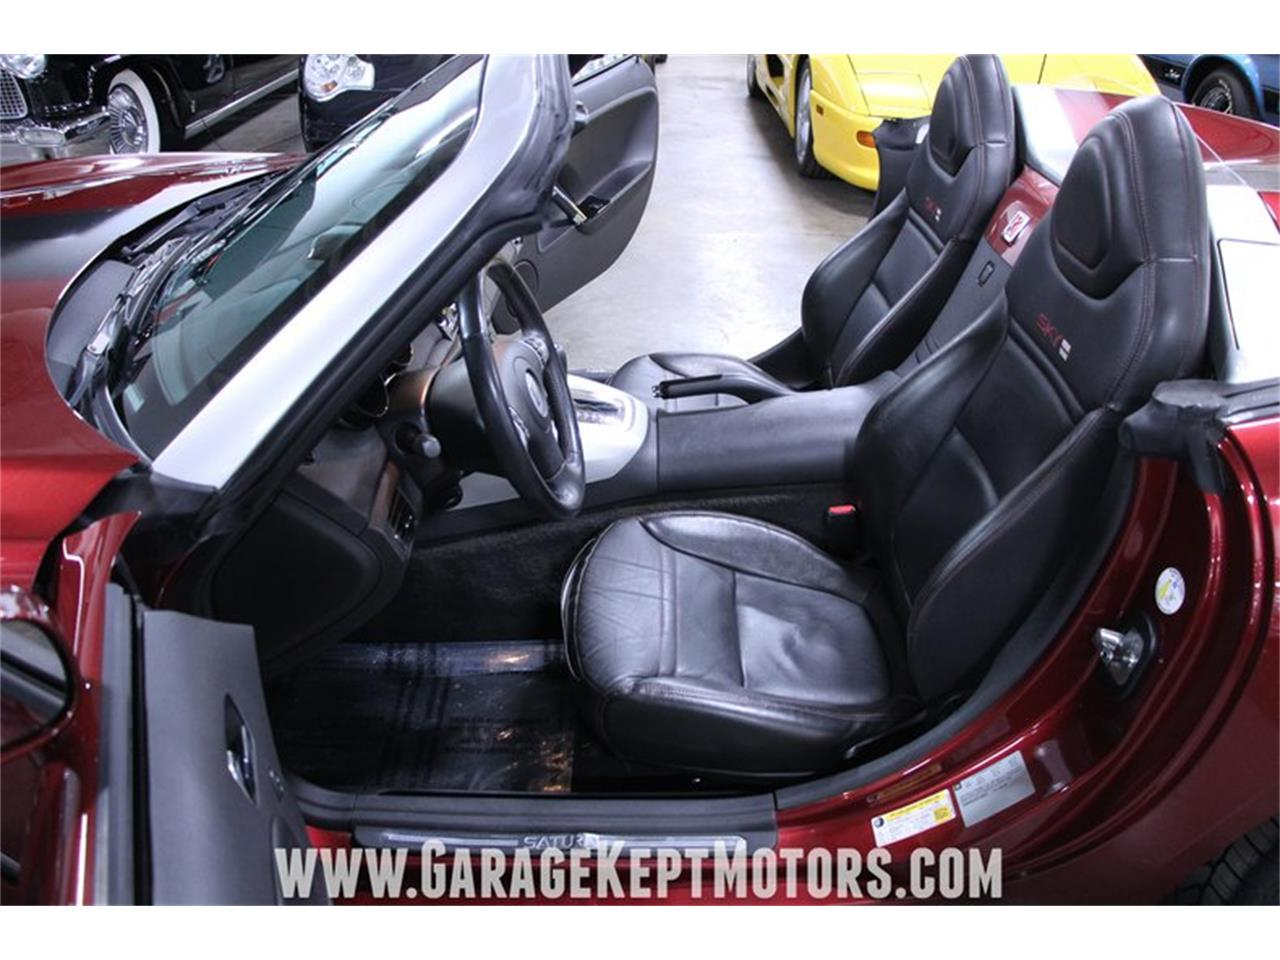 2009 Saturn Sky for sale in Grand Rapids, MI – photo 62